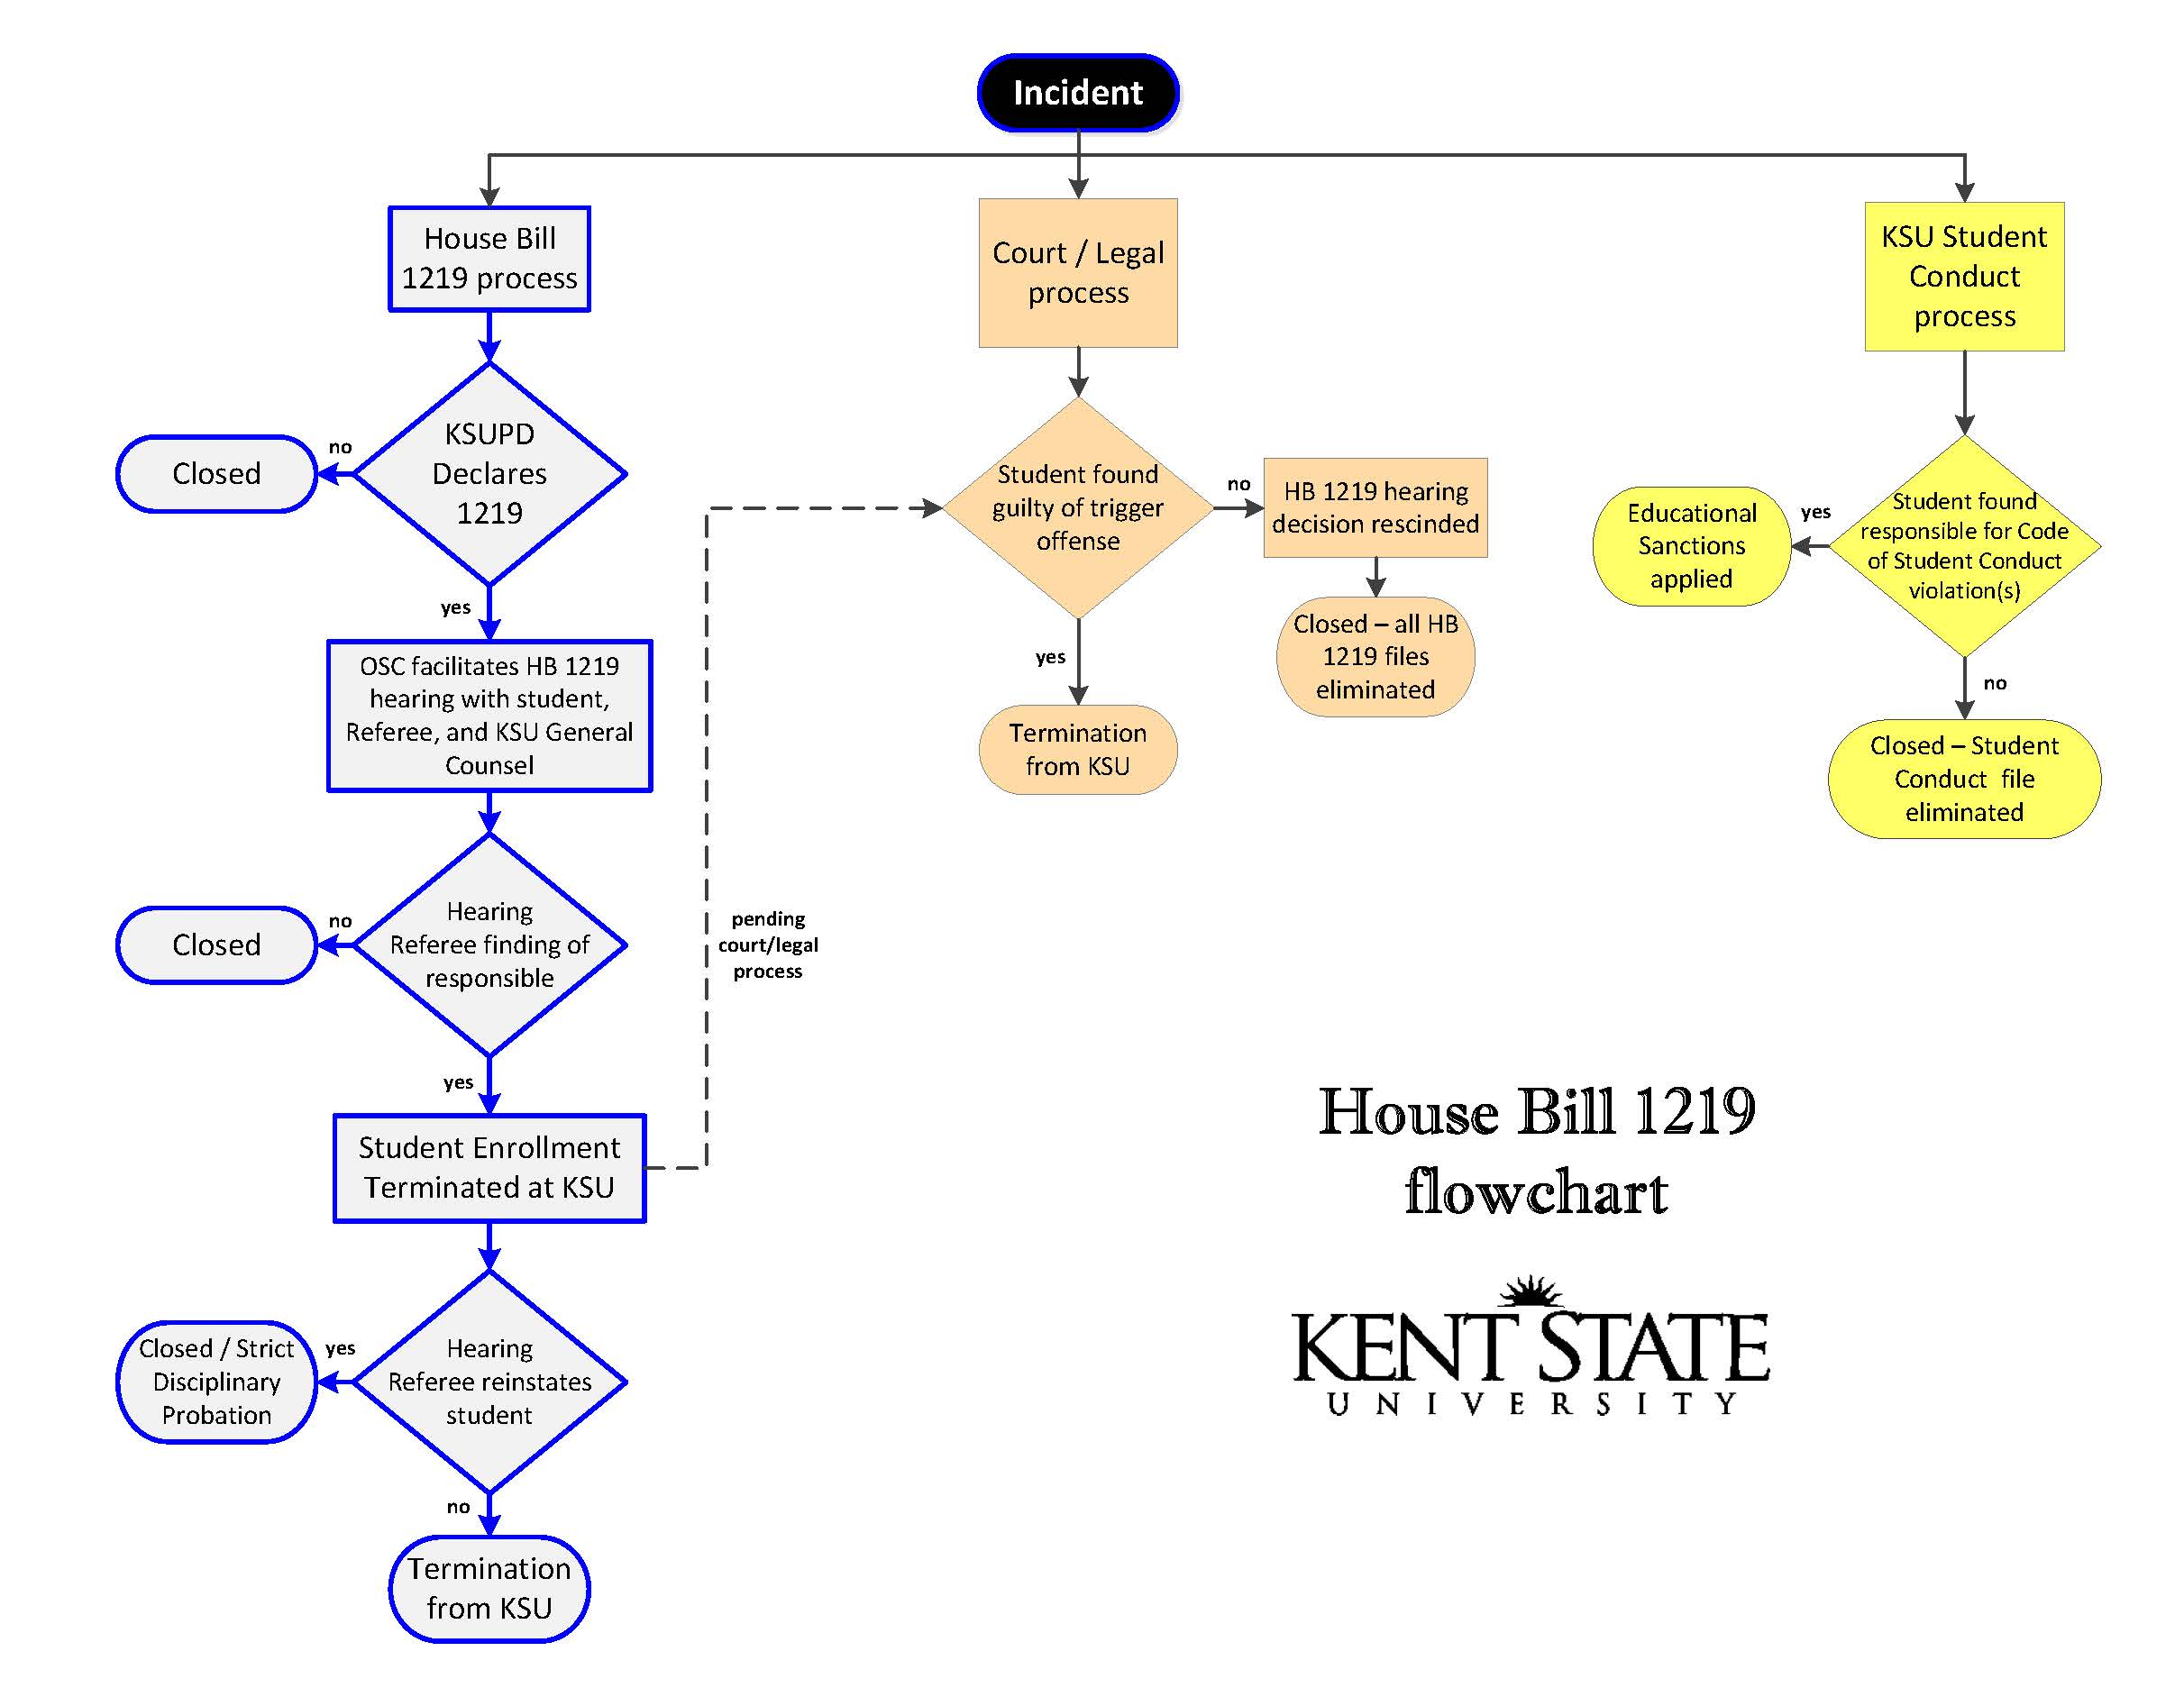 House Bill 1219 flowchart